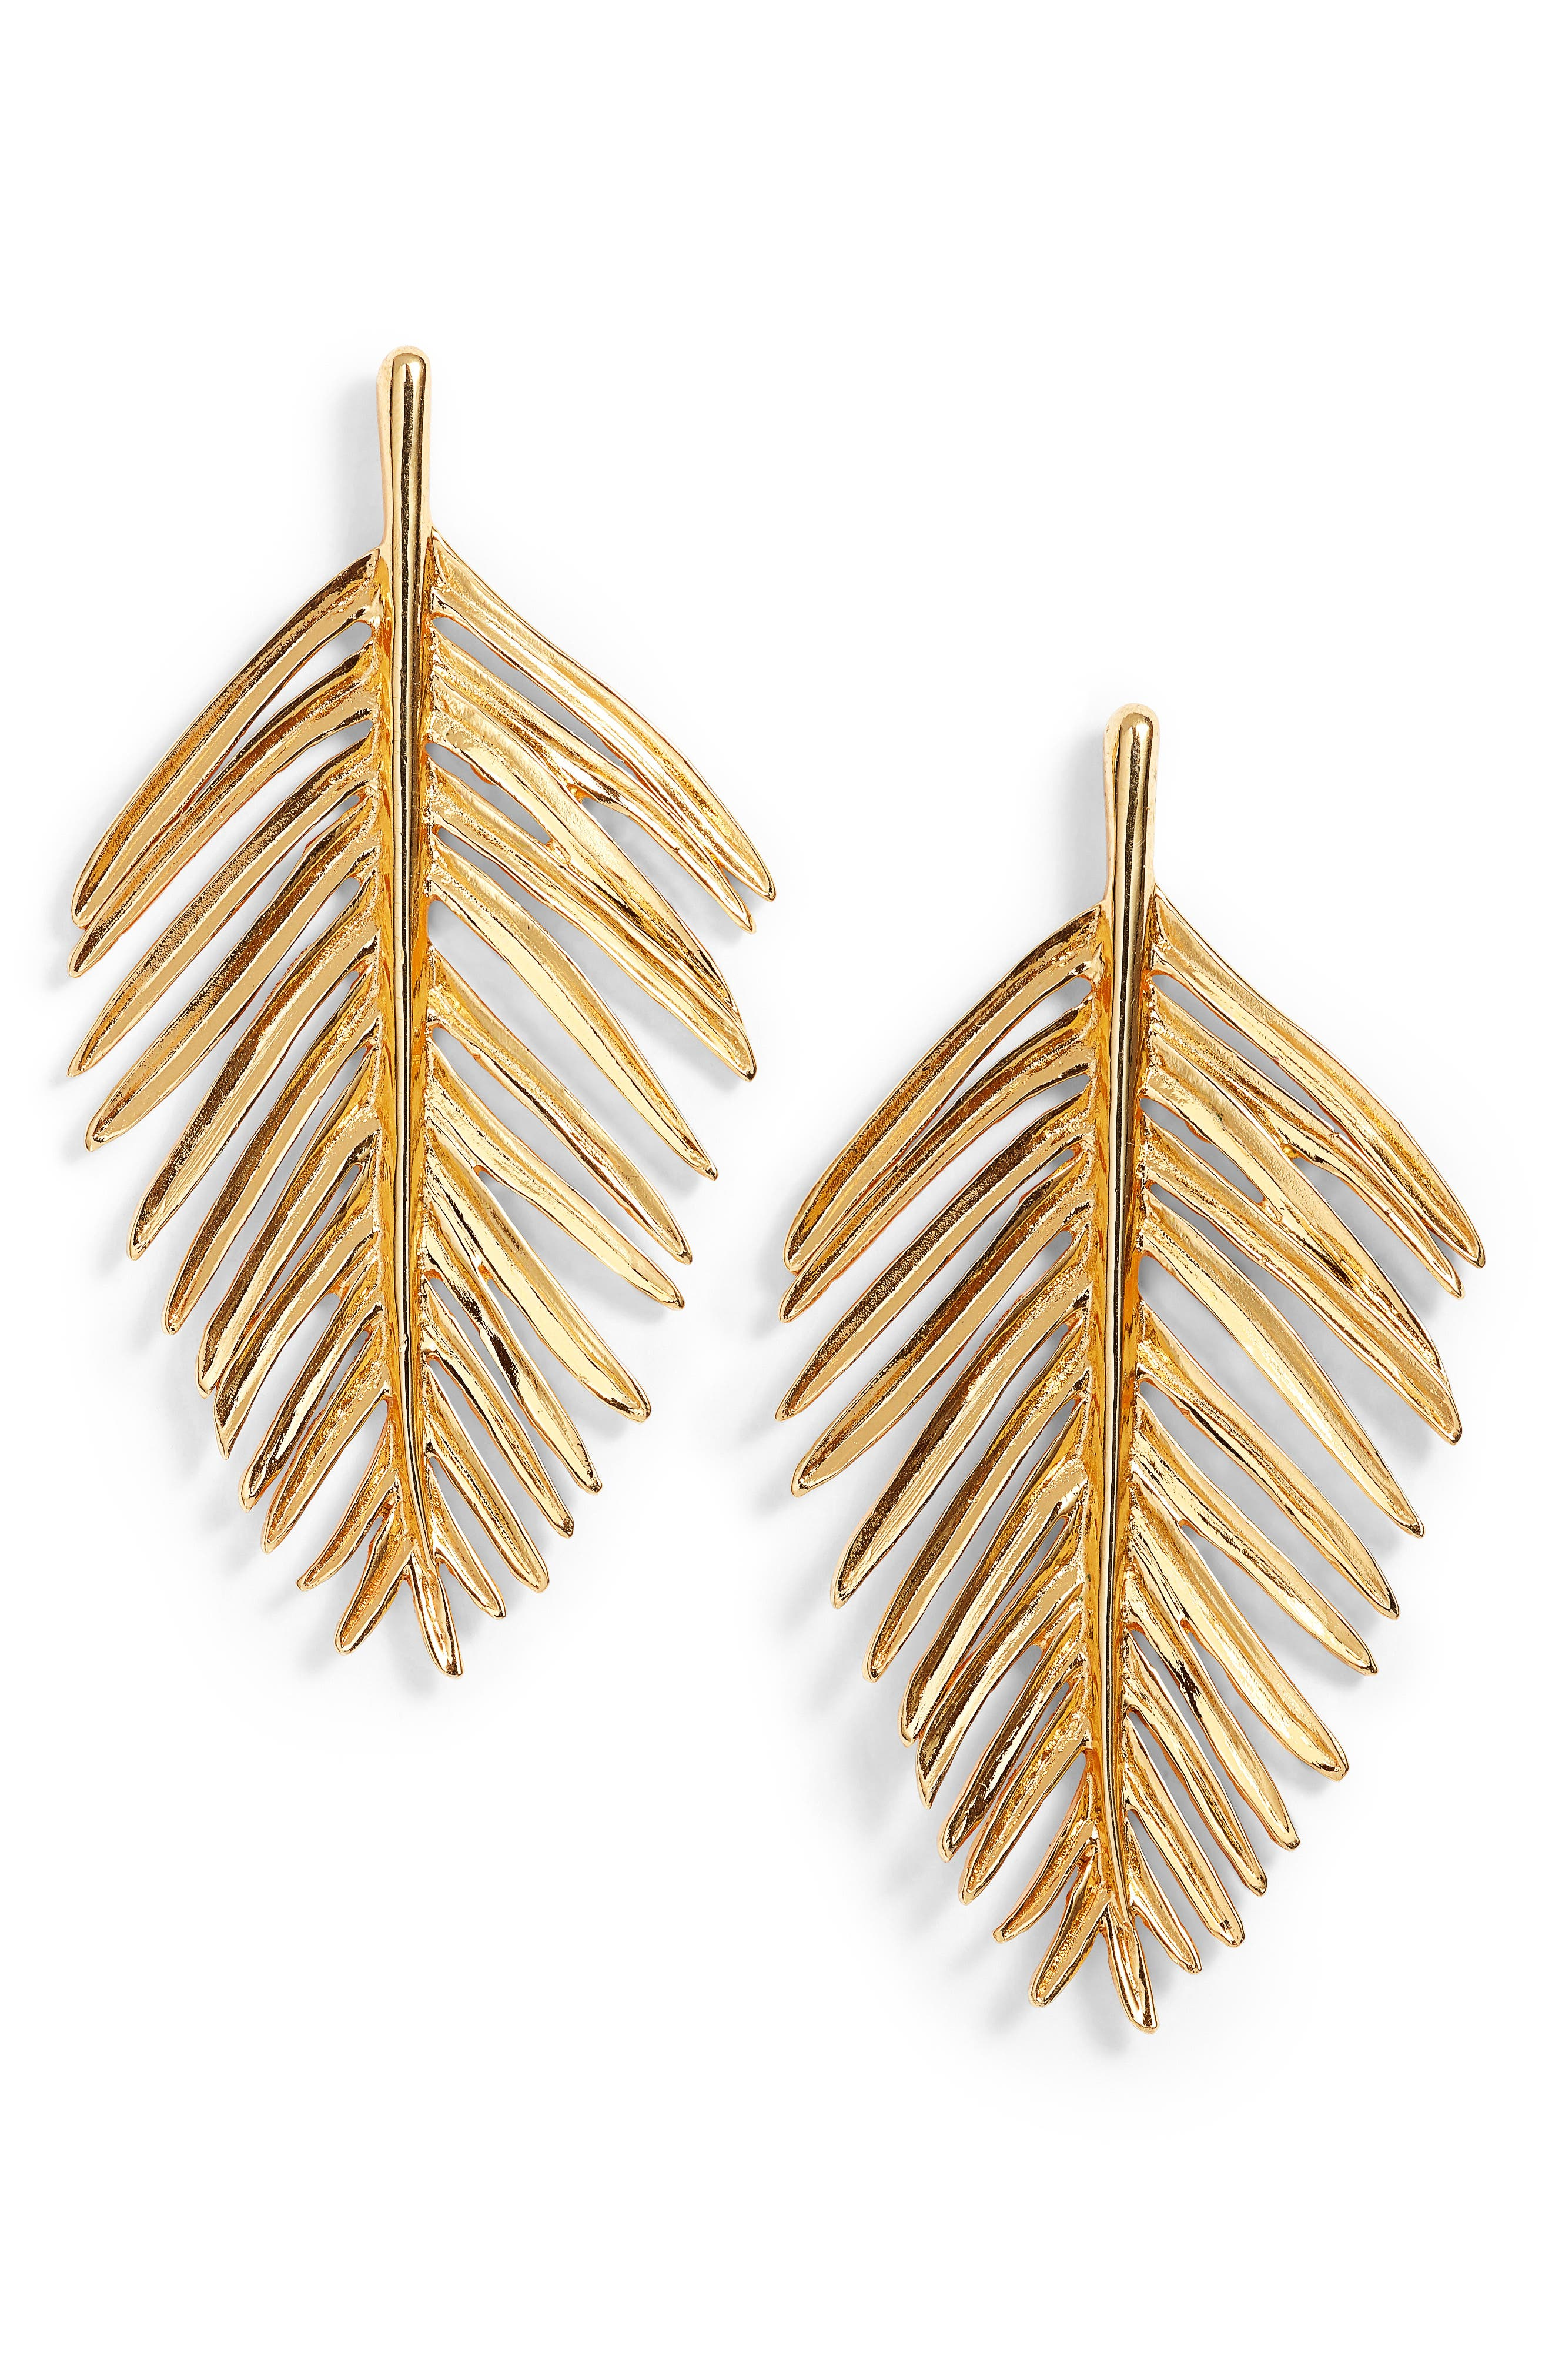 Main Image - Oscar de la Renta Leaf Drop Earrings